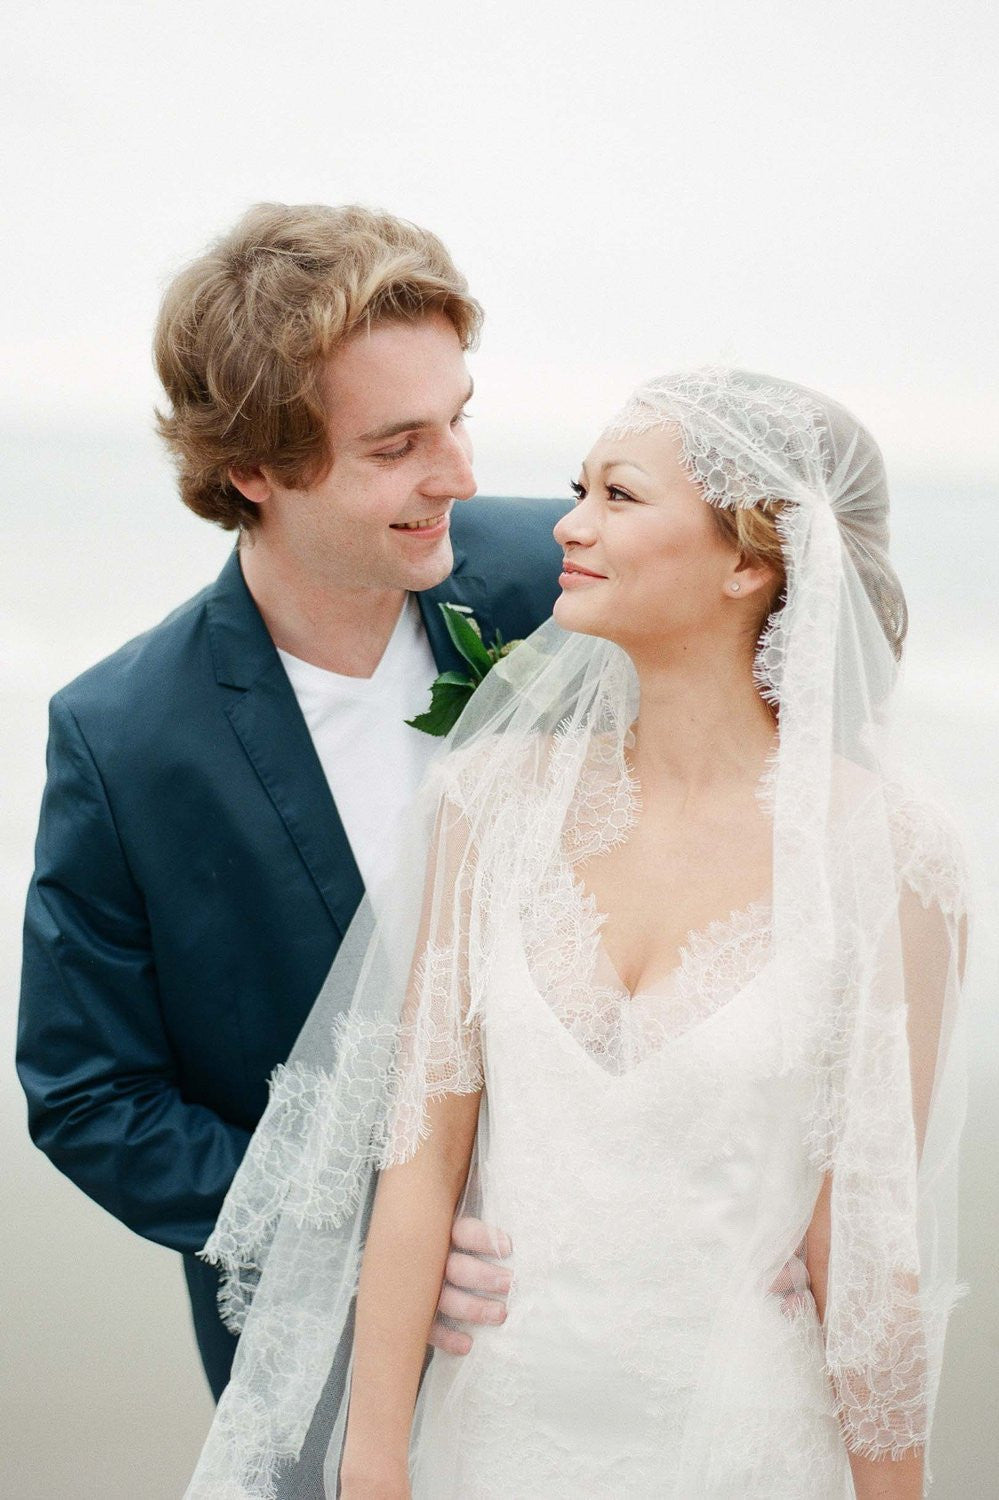 Mar Scalloped French Lace Juliet Veil in Ivory silk tulle